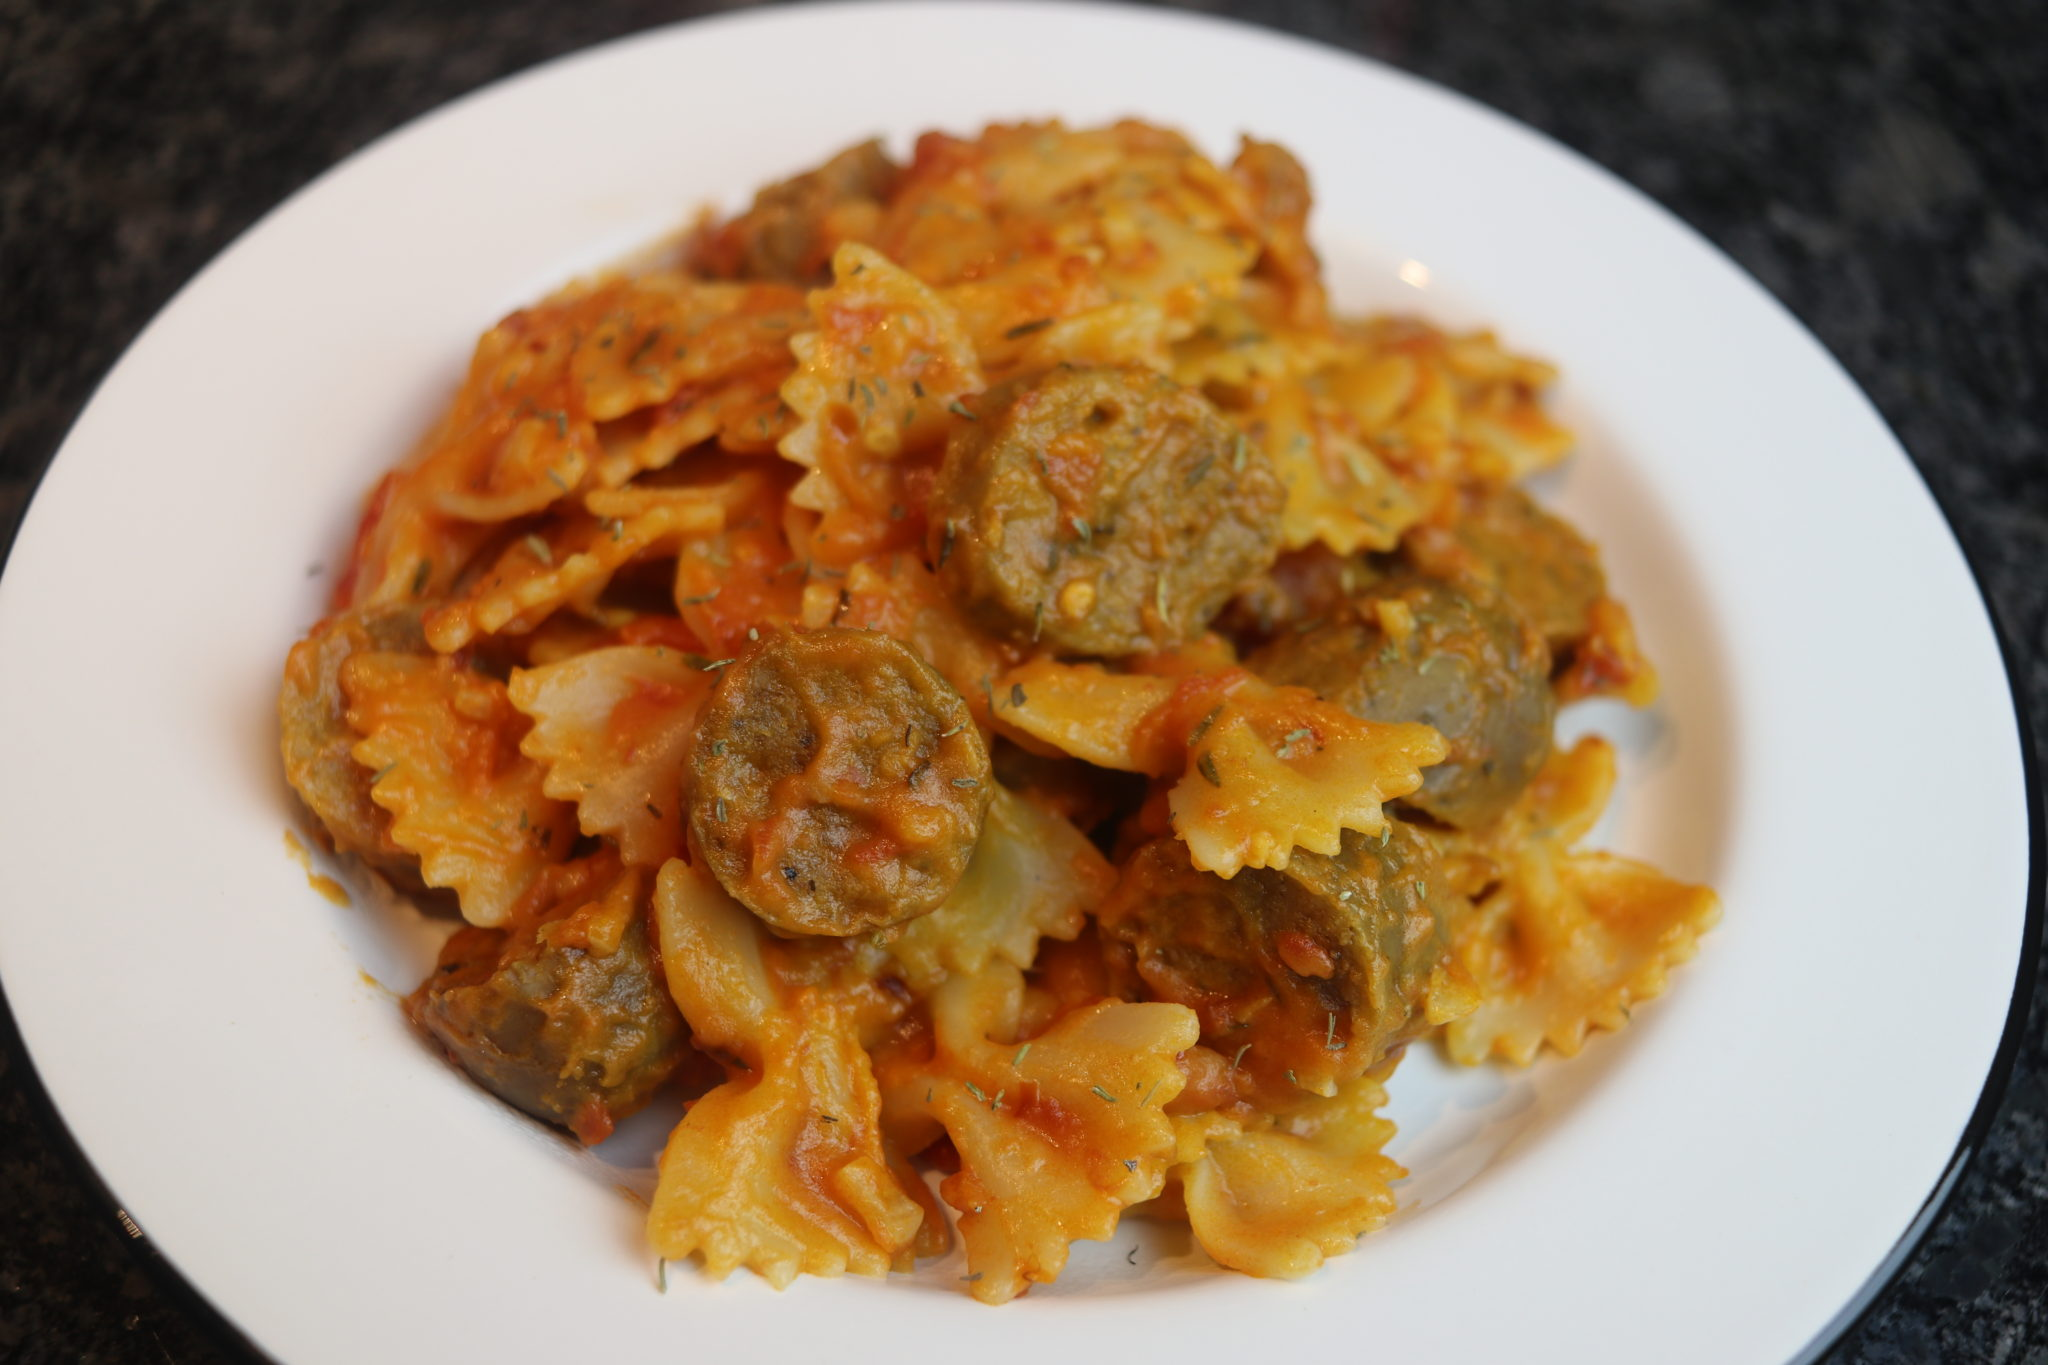 Creamy tomato pasta with vegan sausage comfort recipe cheap watch the video above or see below for the written recipe and ingredients forumfinder Choice Image